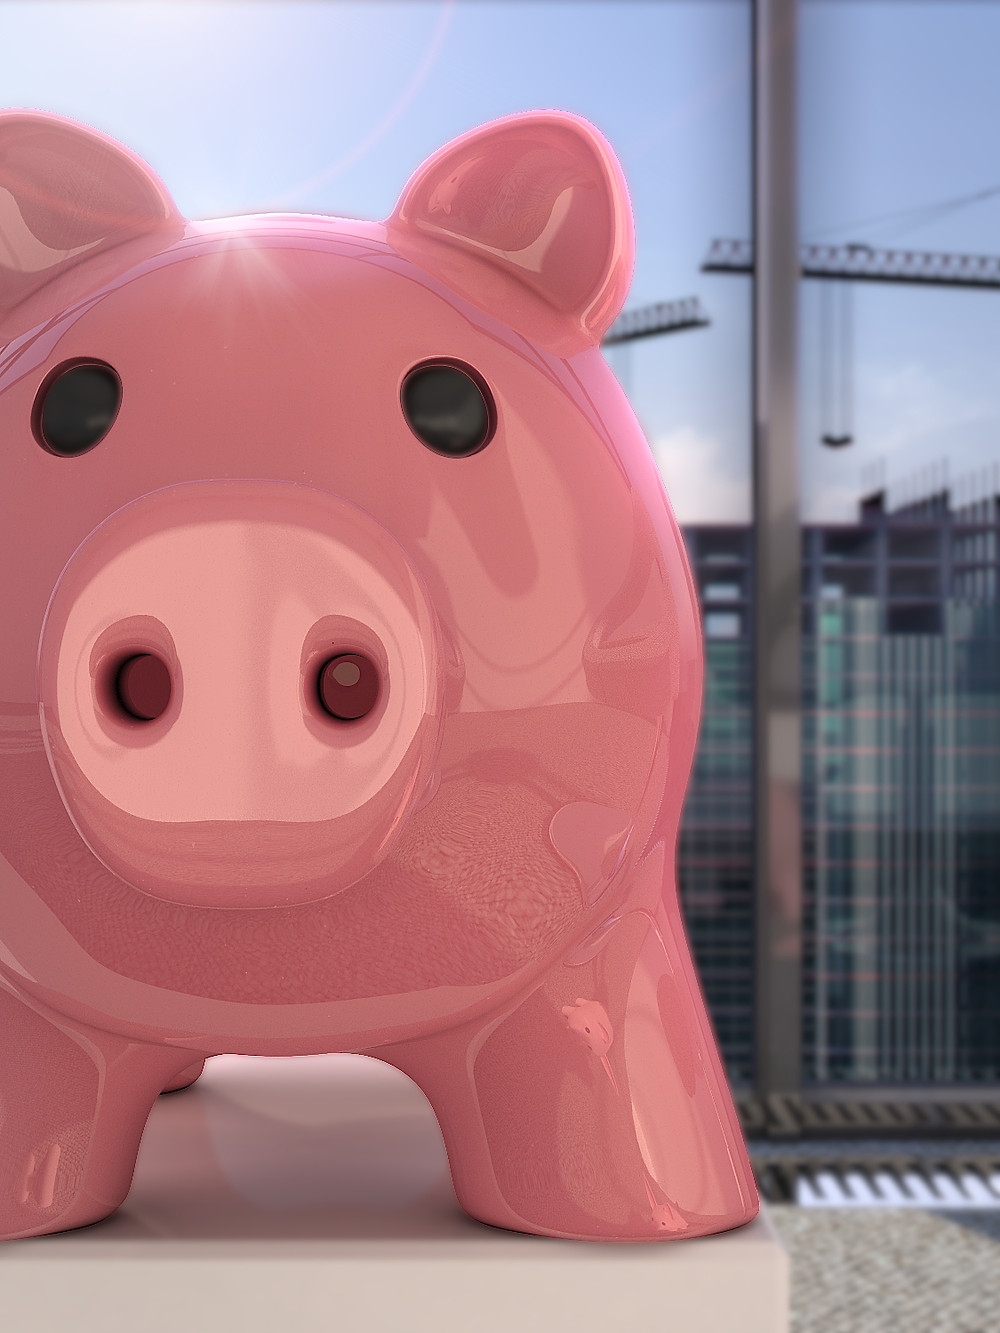 Photorealistic marketing 3D Rendering with the money pig interested in your proposal